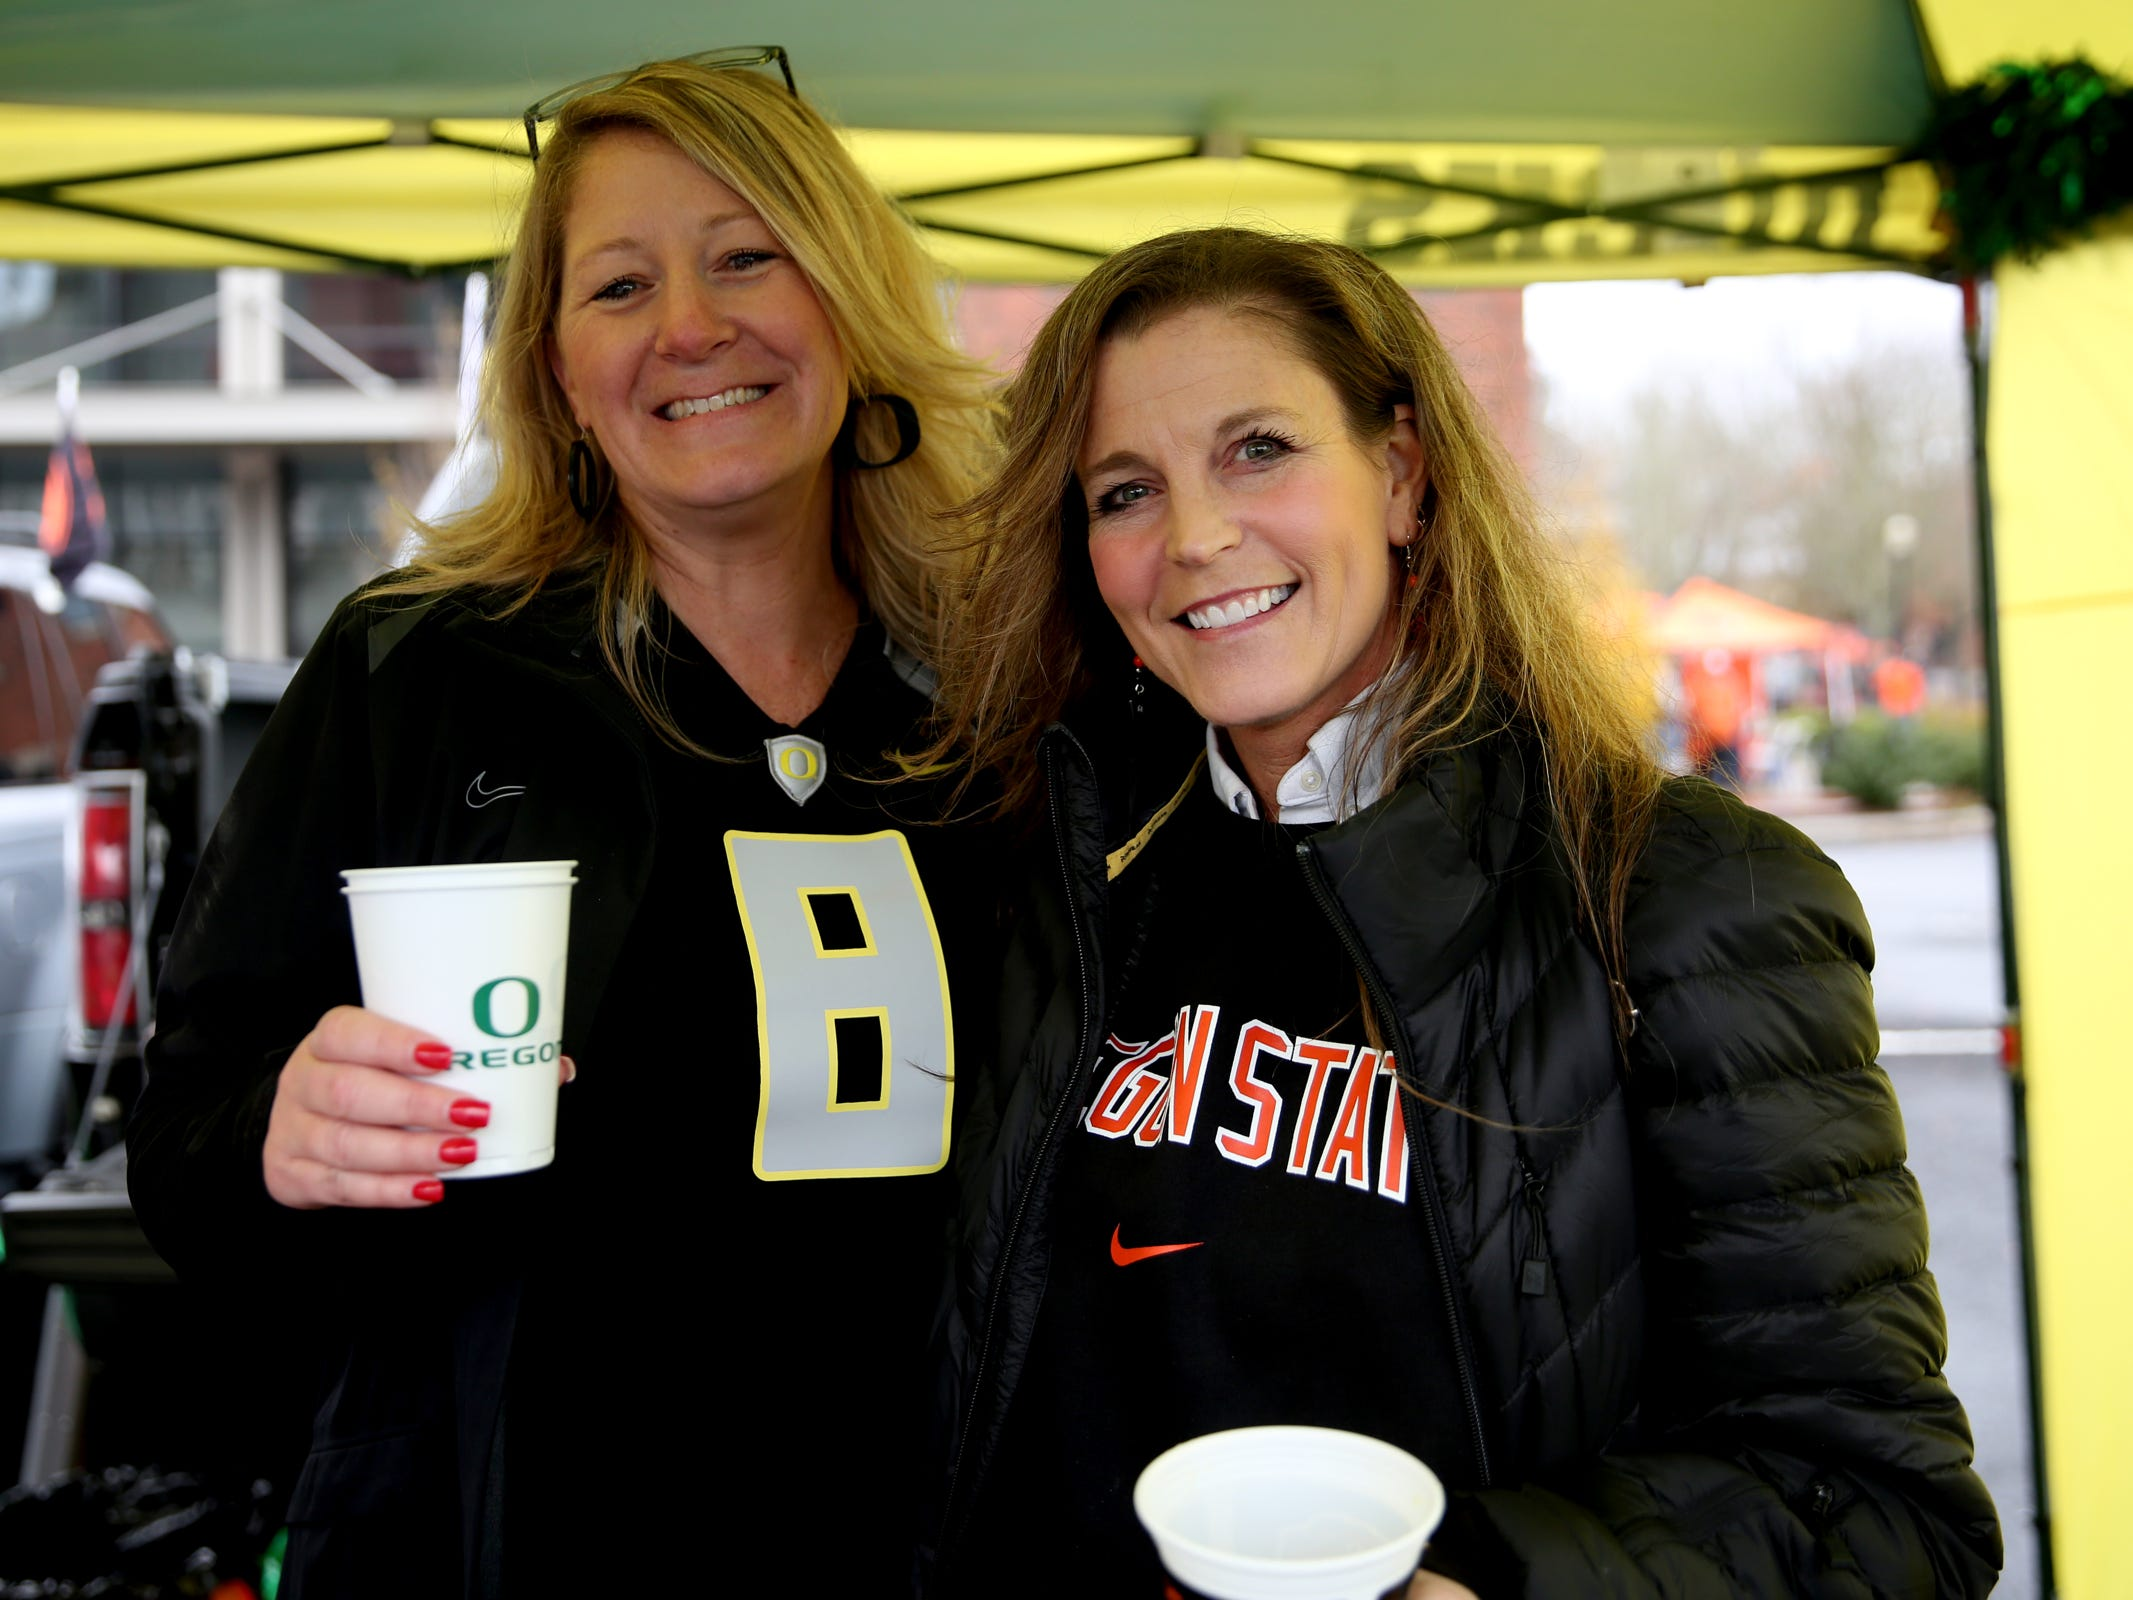 Sisters-in-law Darci Hansen, of Beaverton, and Lori Hansen, of Portland, before the start of the Oregon vs. Oregon State Civil war football game at Oregon State University in Corvallis on Friday, Nov. 23, 2018.